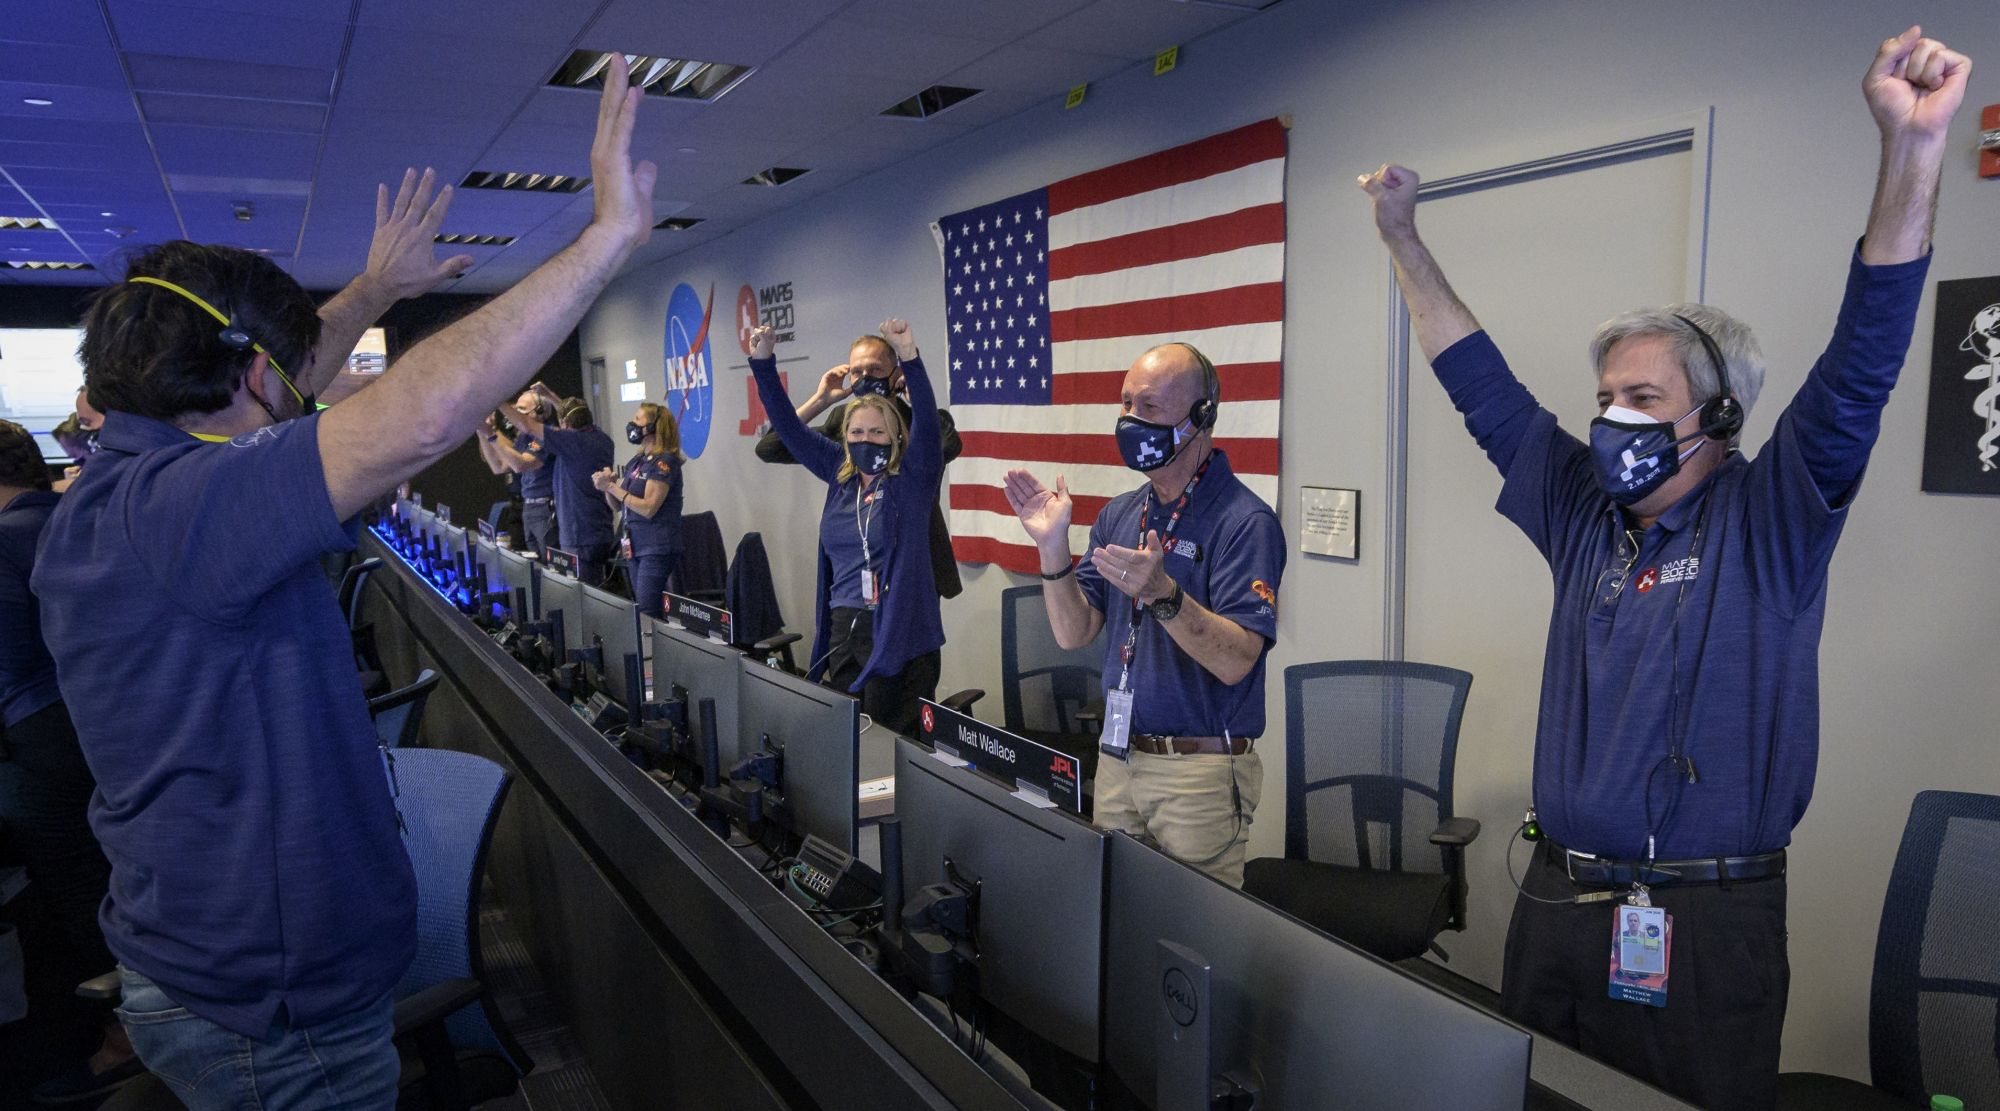 PASADENA, CA - FEBRUARY 18:  In this handout image provided by NASA, members of NASA's Perseverance rover team react in mission control after receiving confirmation the spacecraft successfully touched down on Mars, , February 18, 2021 at NASA's Jet Propulsion Laboratory in Pasadena, California.  A key objective for Perseverance's mission on Mars is astrobiology, including the search for signs of ancient microbial life. The rover will characterize the planet's geology and past climate, paving the way for hum